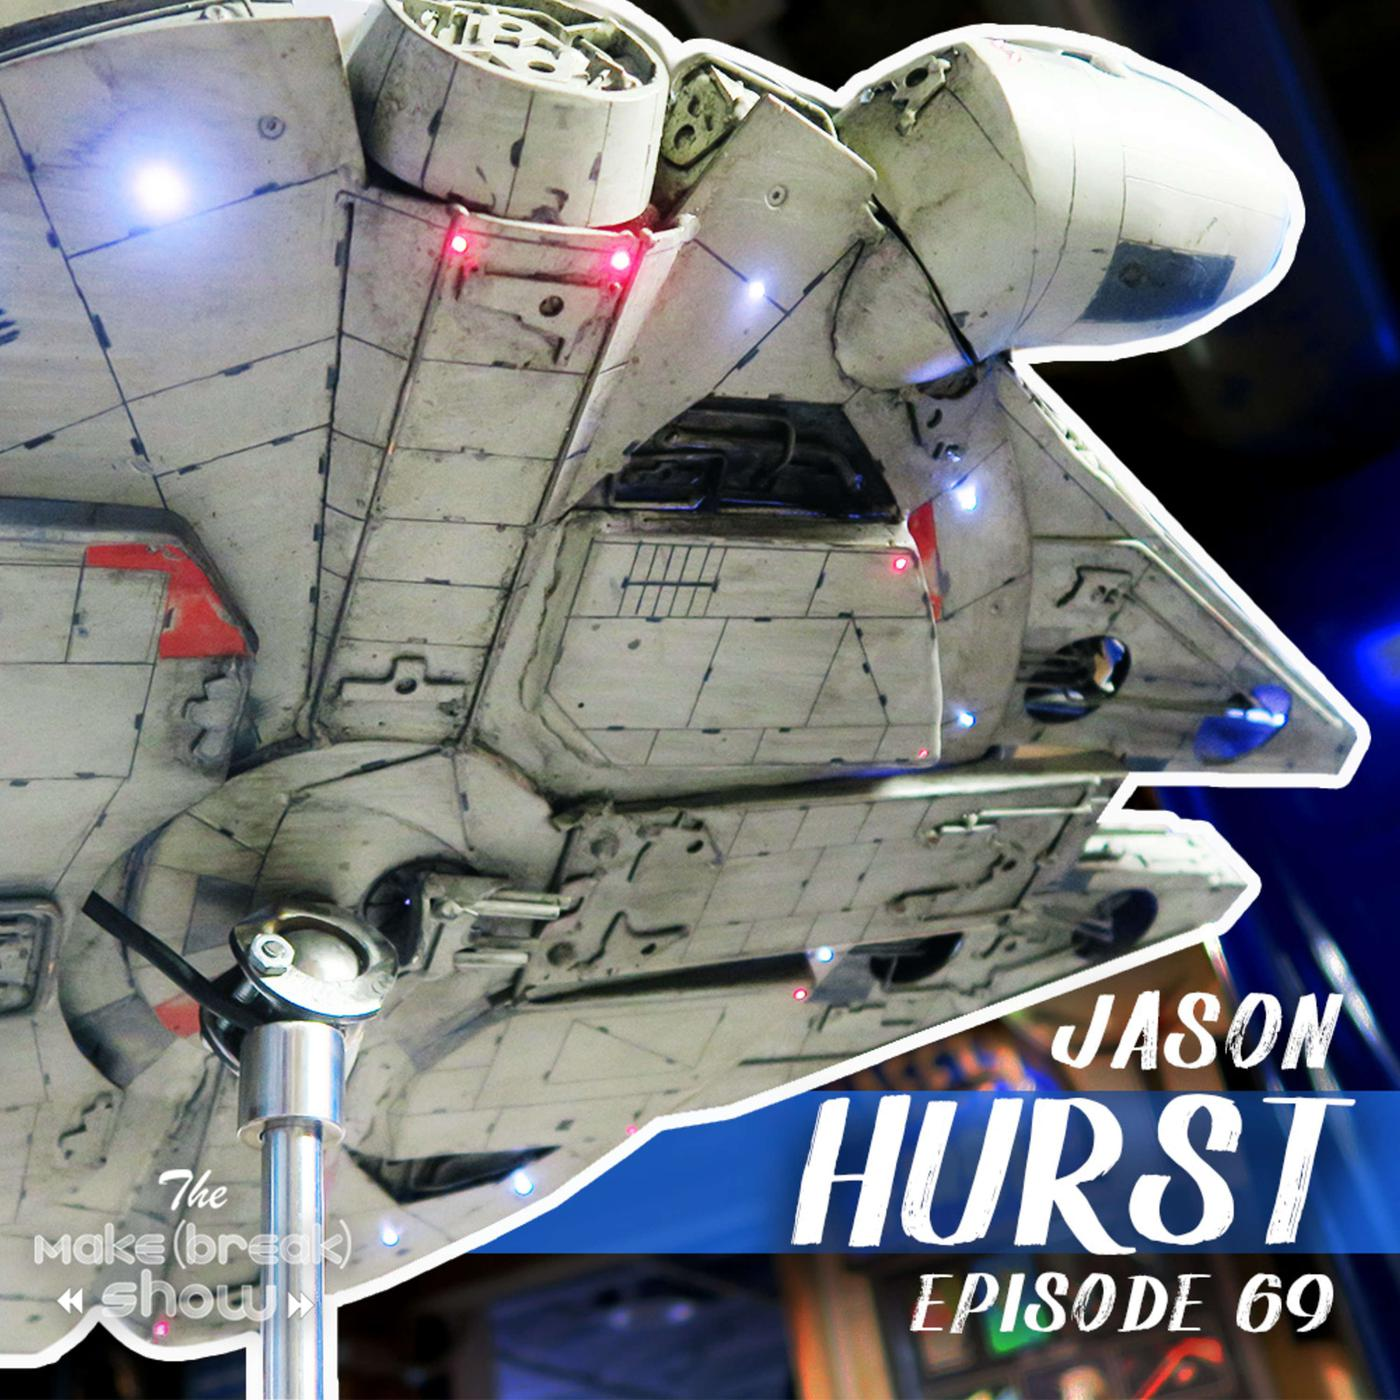 This week we chat with Jason Hurst from Works By a Hurst. We dive into his Star Wars-inspired metal sculptures and what it takes to fabricate in a 1 car garage.